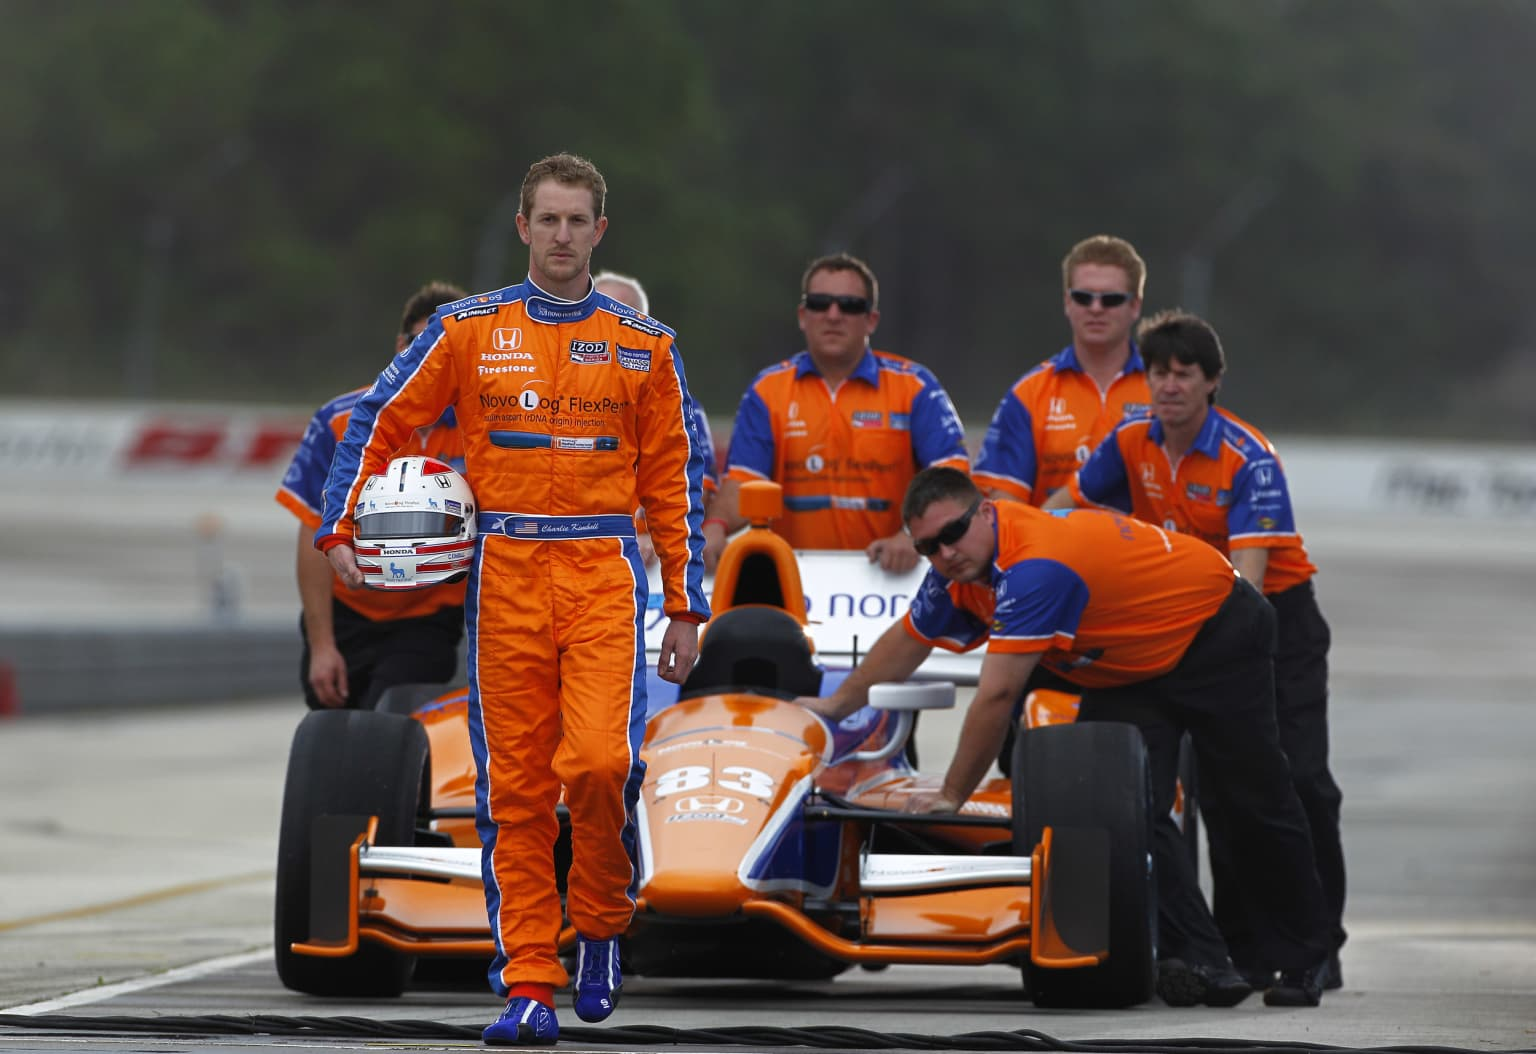 Diabetes Indycar Integrated Campaign